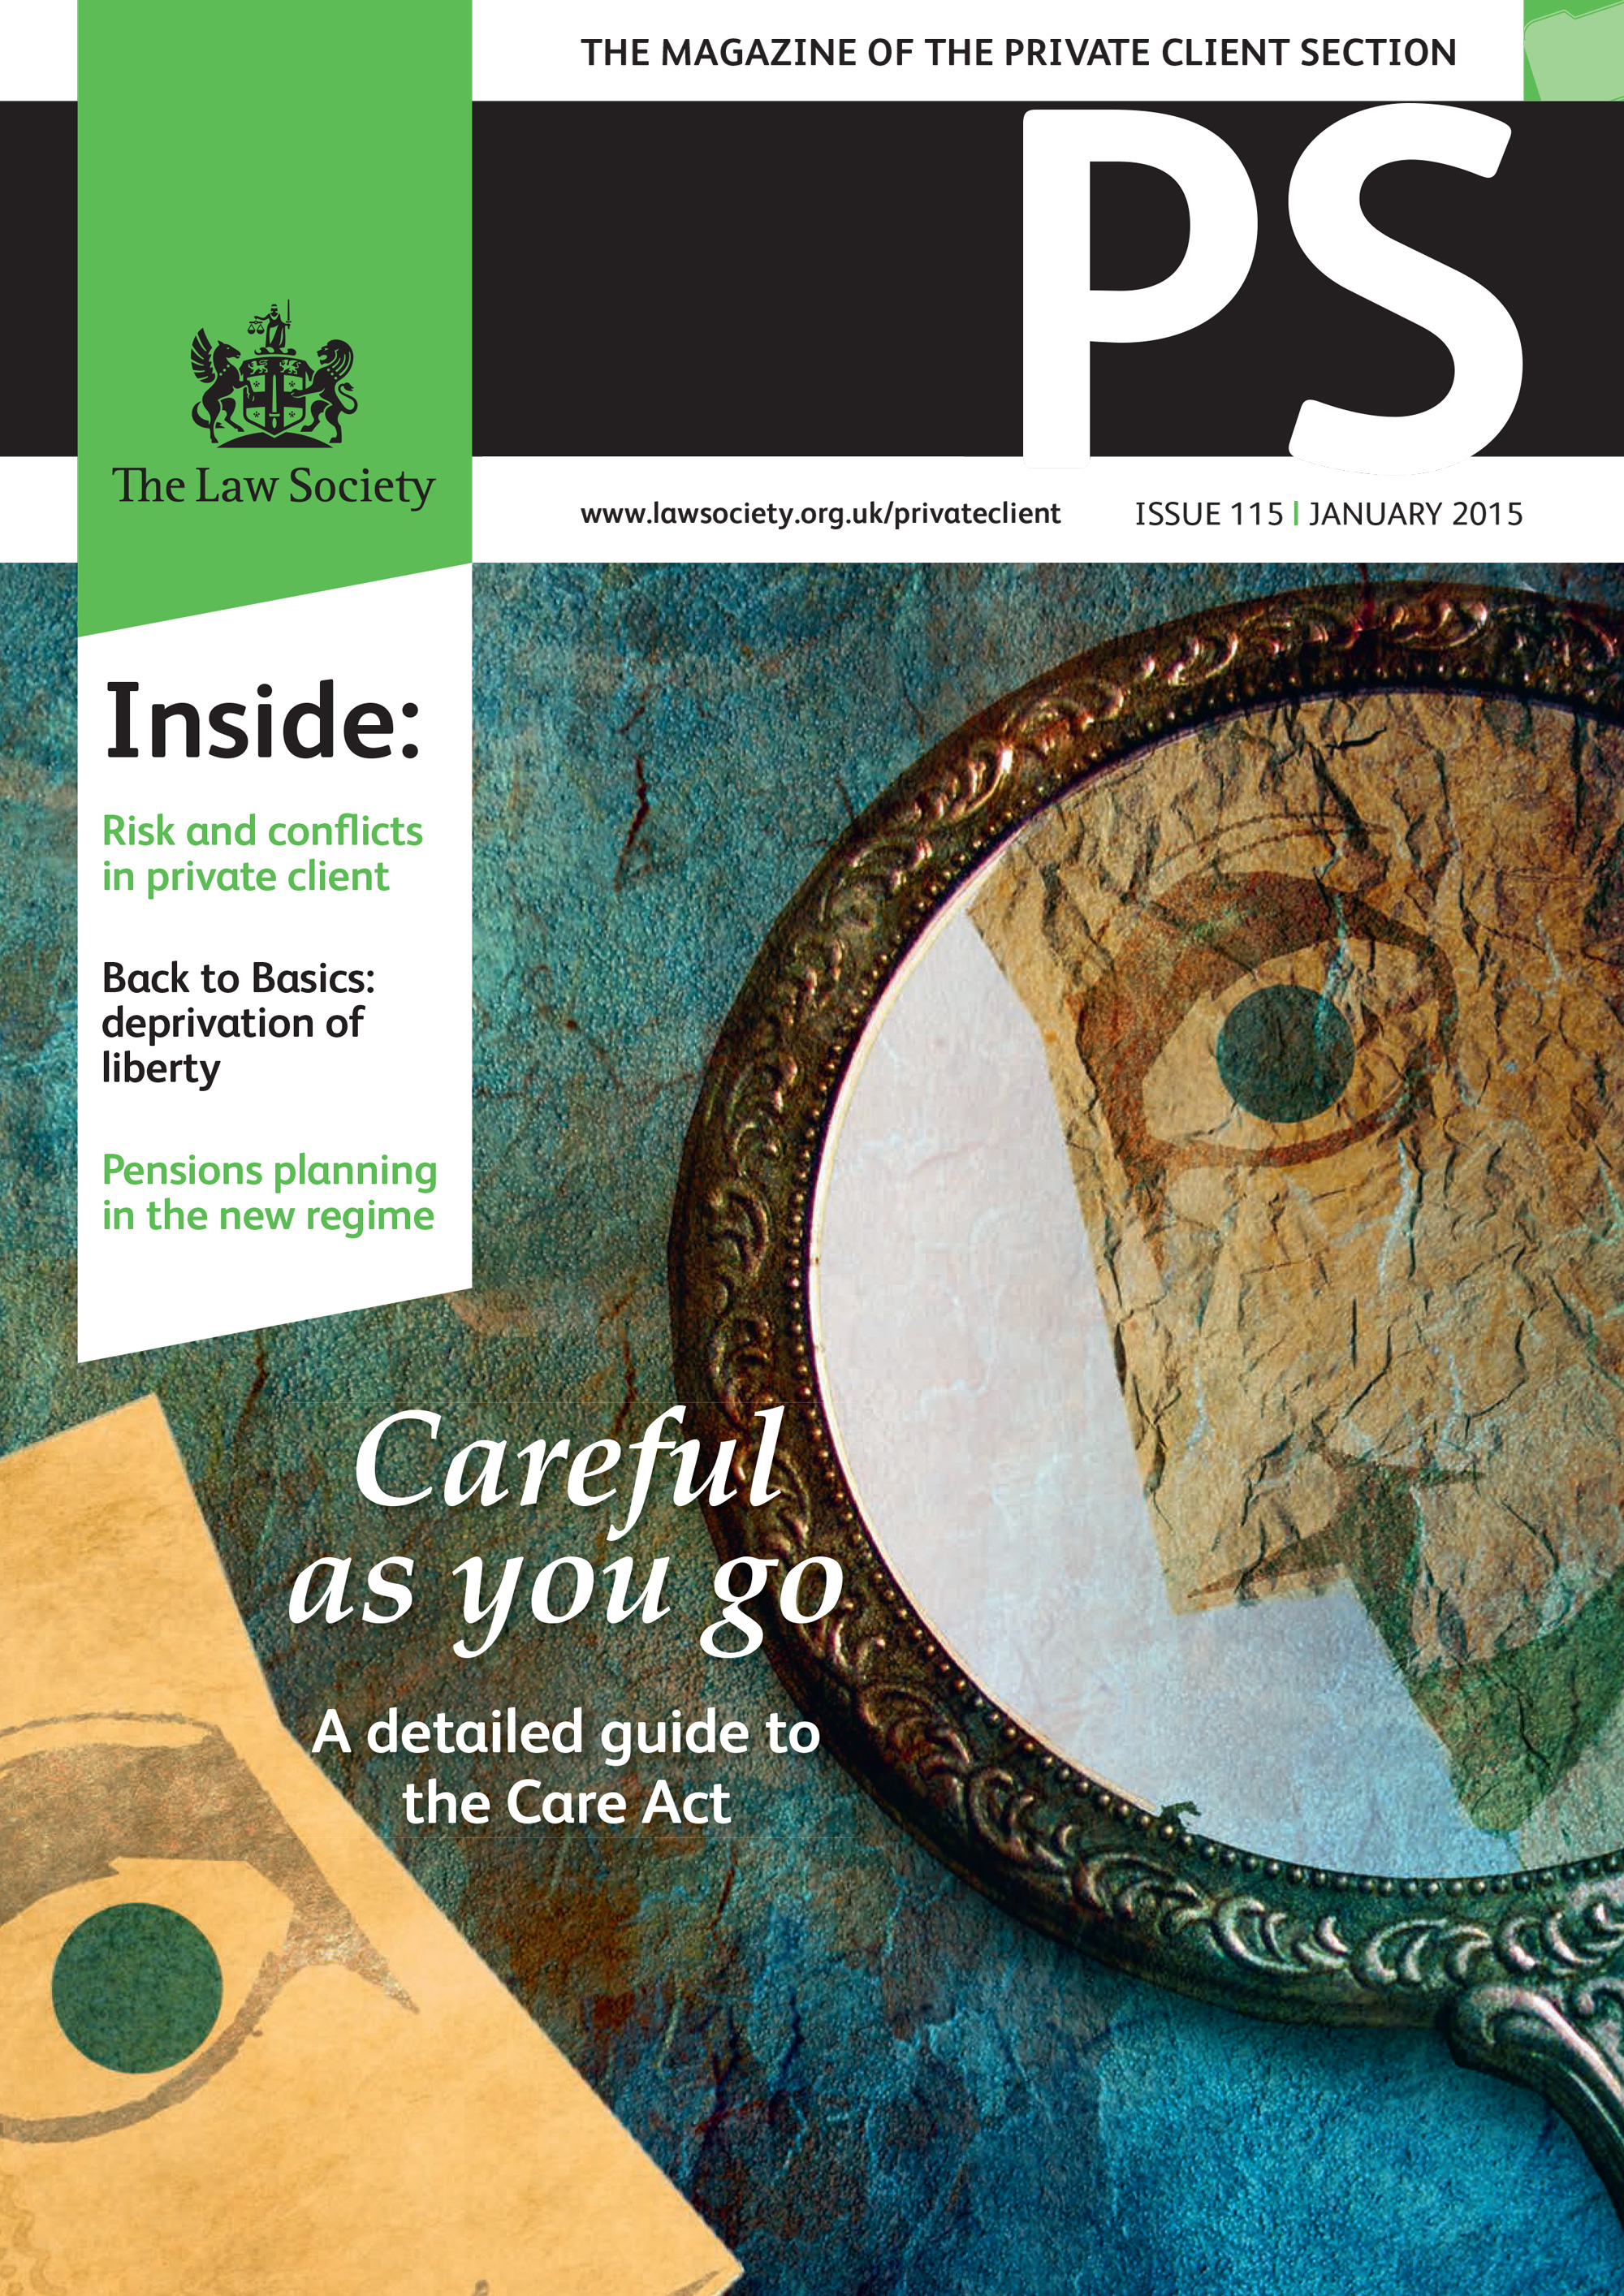 PS January 2015 cover image